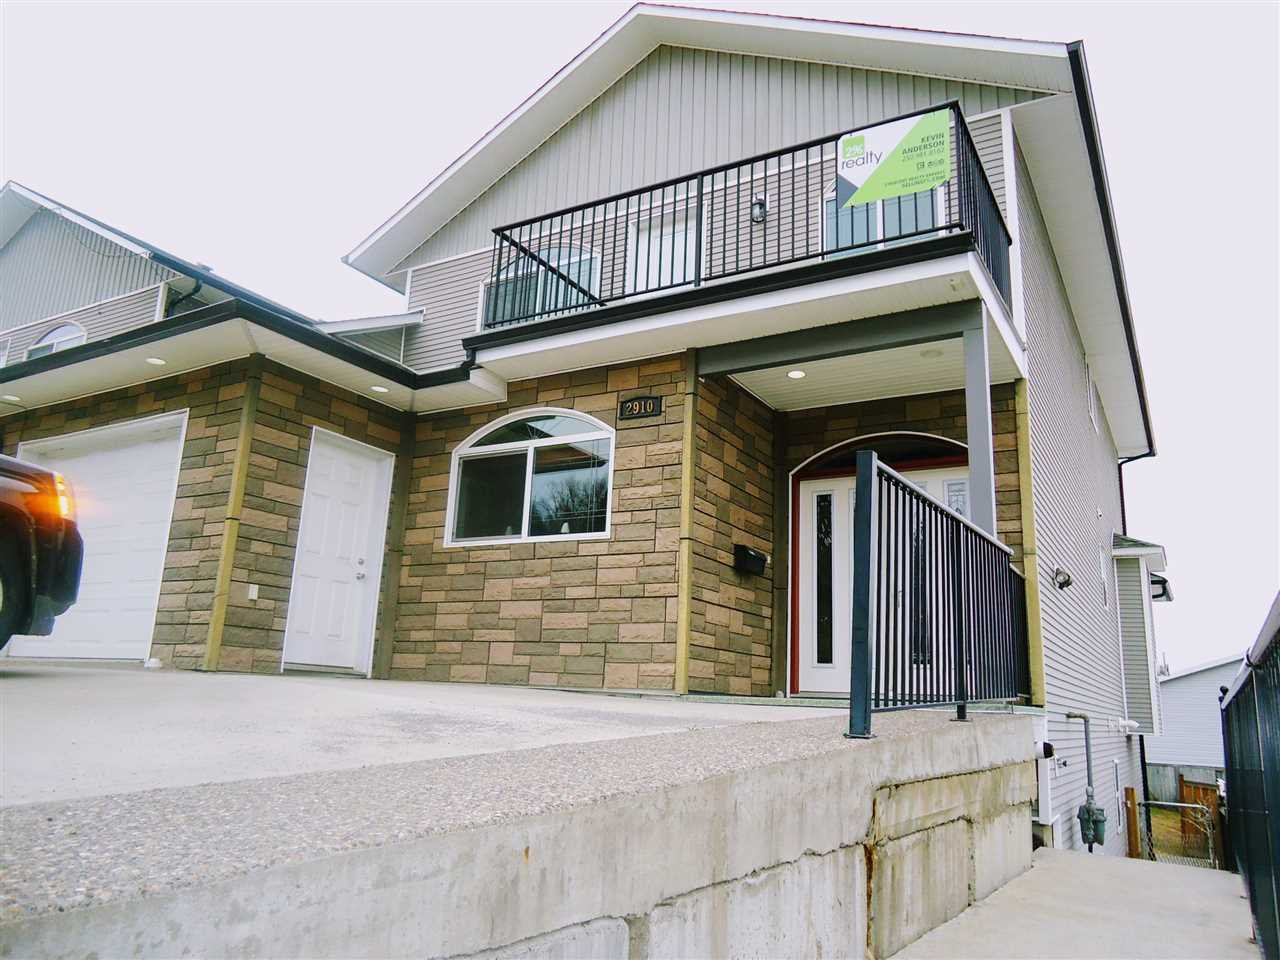 Main Photo: 2910 ANDRES Road in Prince George: Peden Hill 1/2 Duplex for sale (PG City West (Zone 71))  : MLS®# R2360200